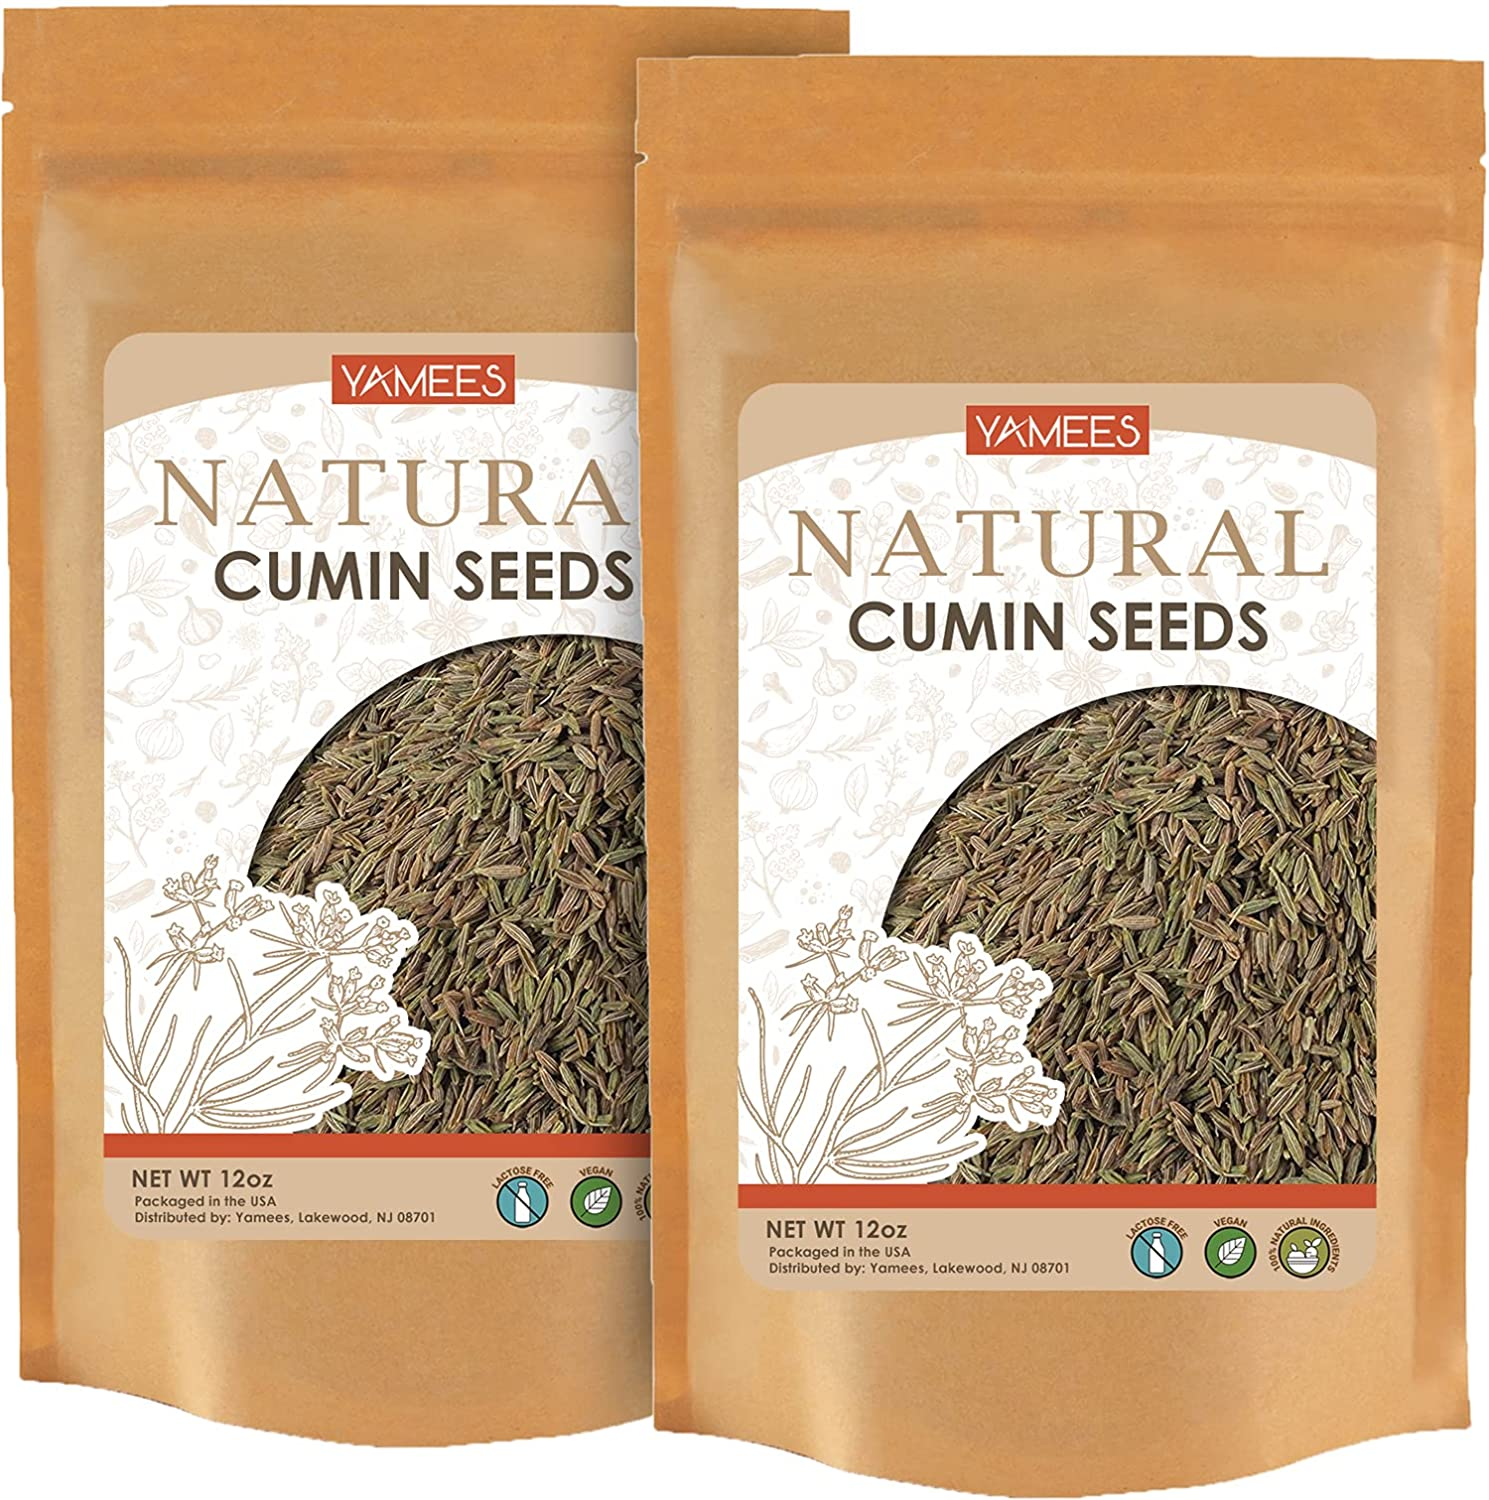 Yamees Cumin Seeds unisex - Deluxe 24 Whole Each Oz – 12